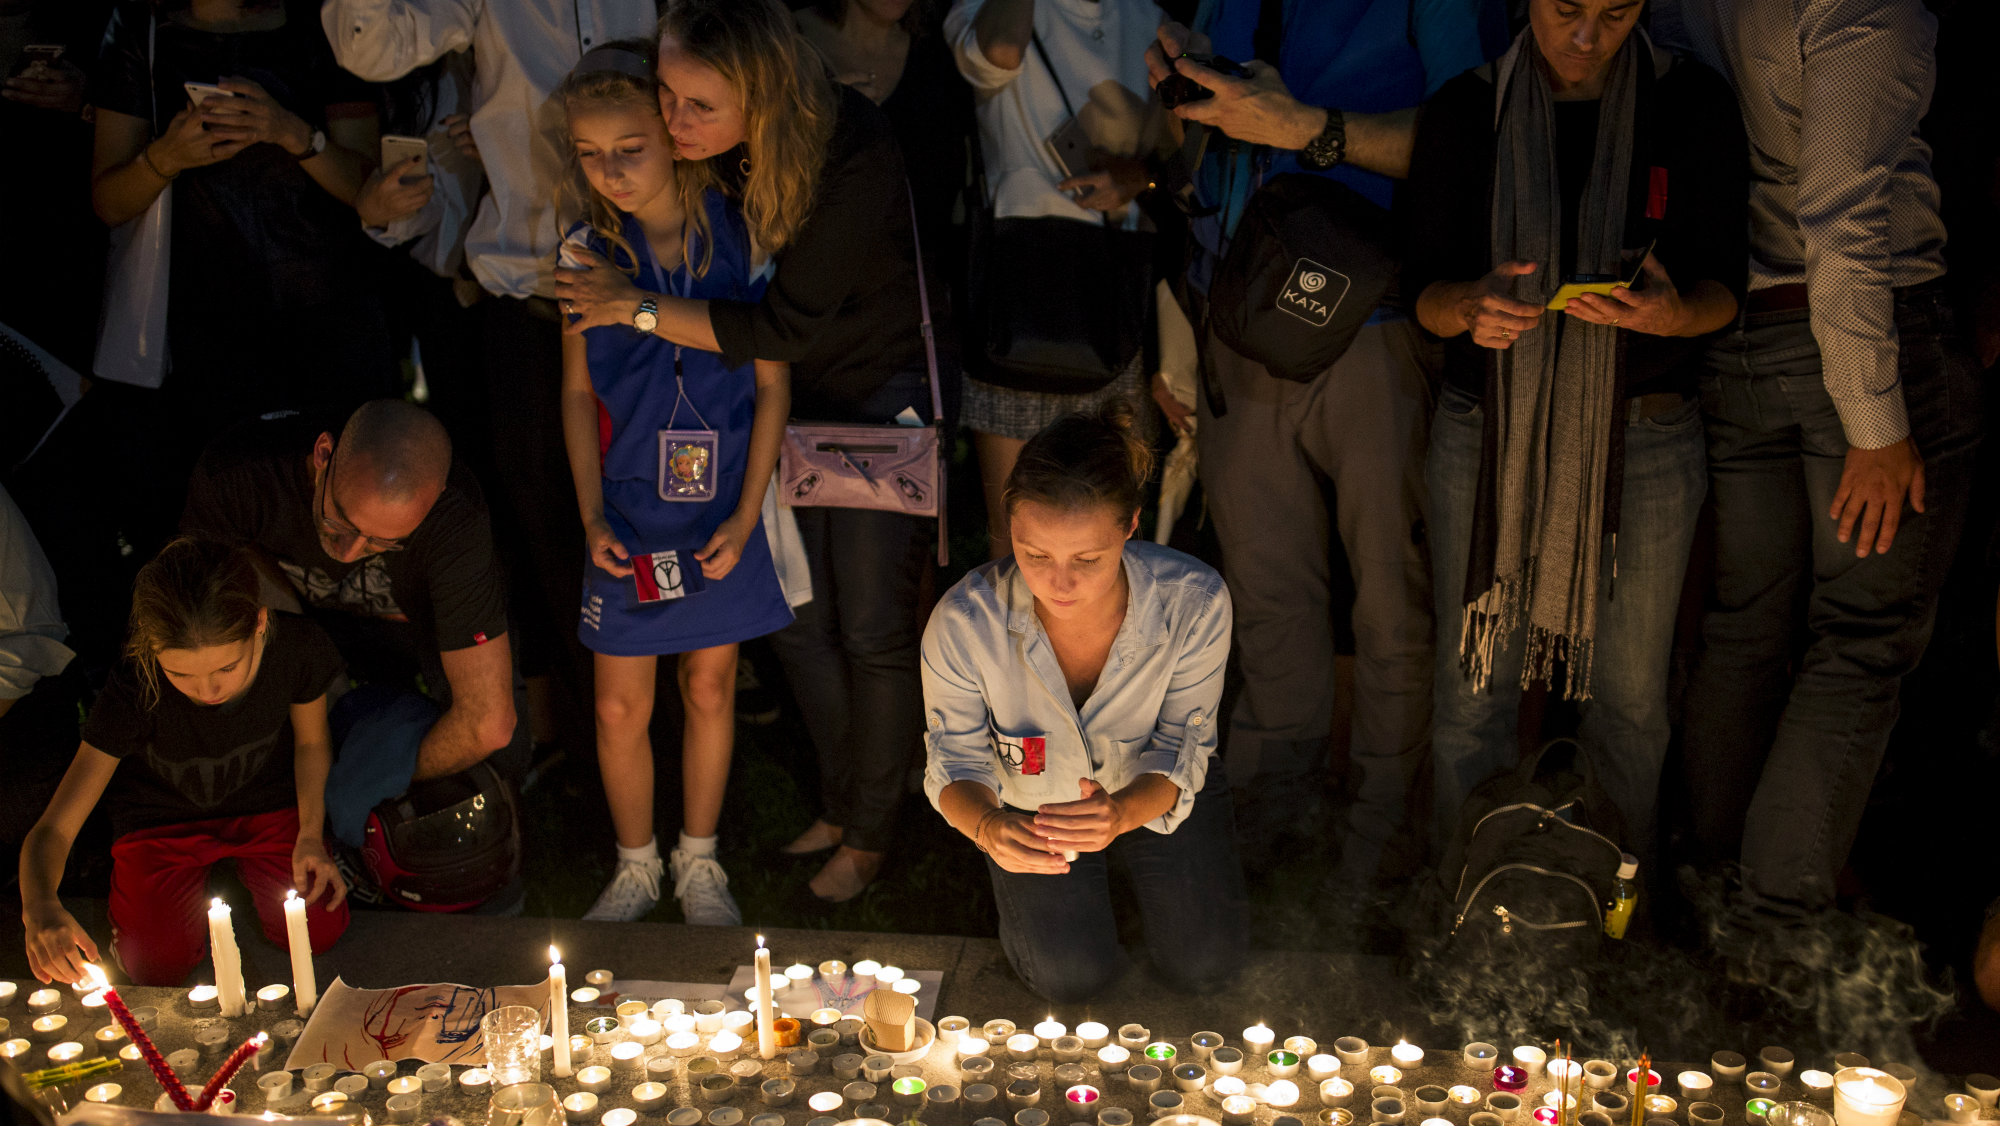 People light candles during a vigil for the victims of the Paris attacks.